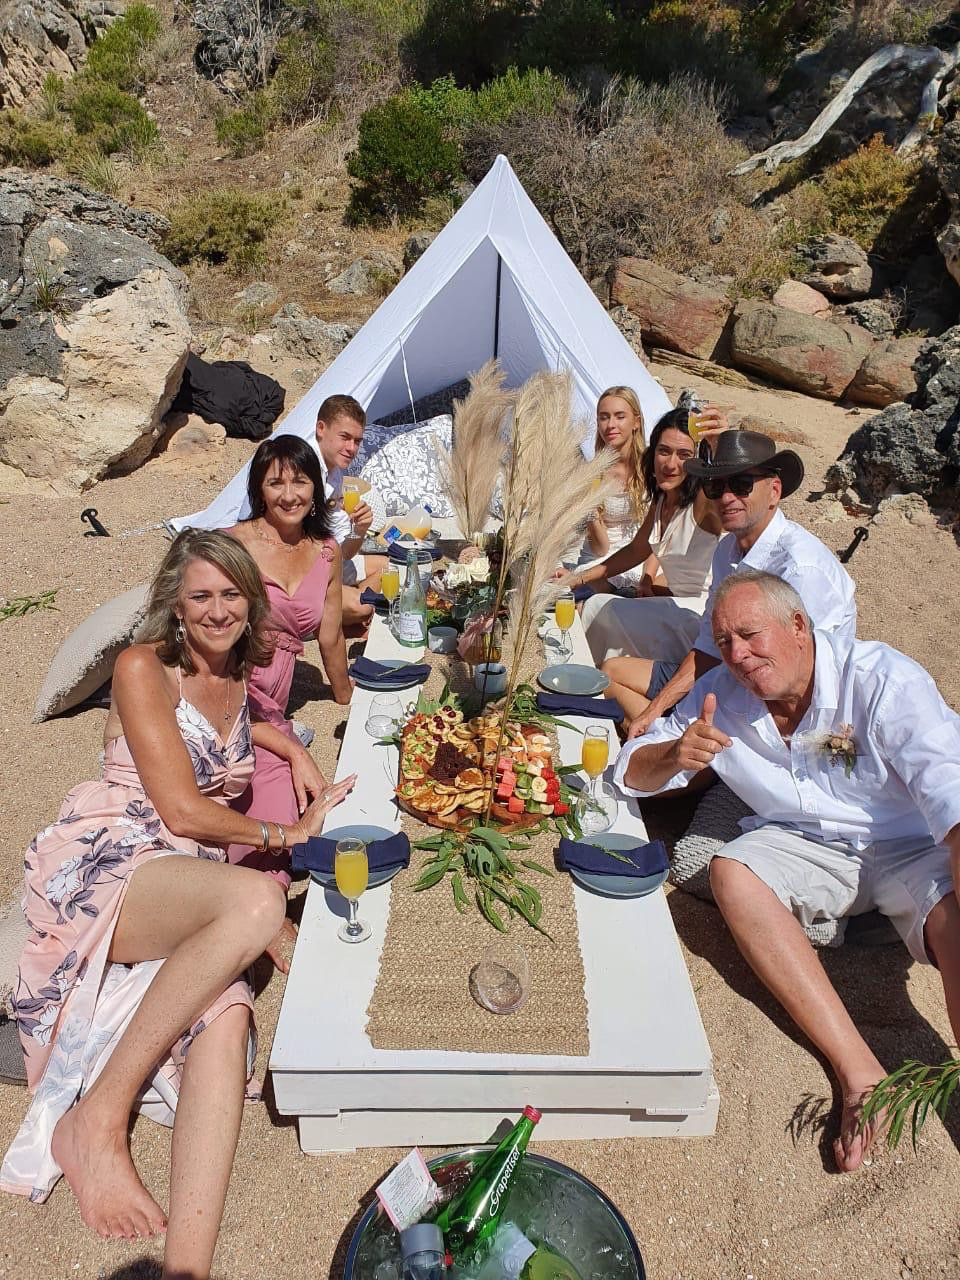 Picnic for 6-10 People